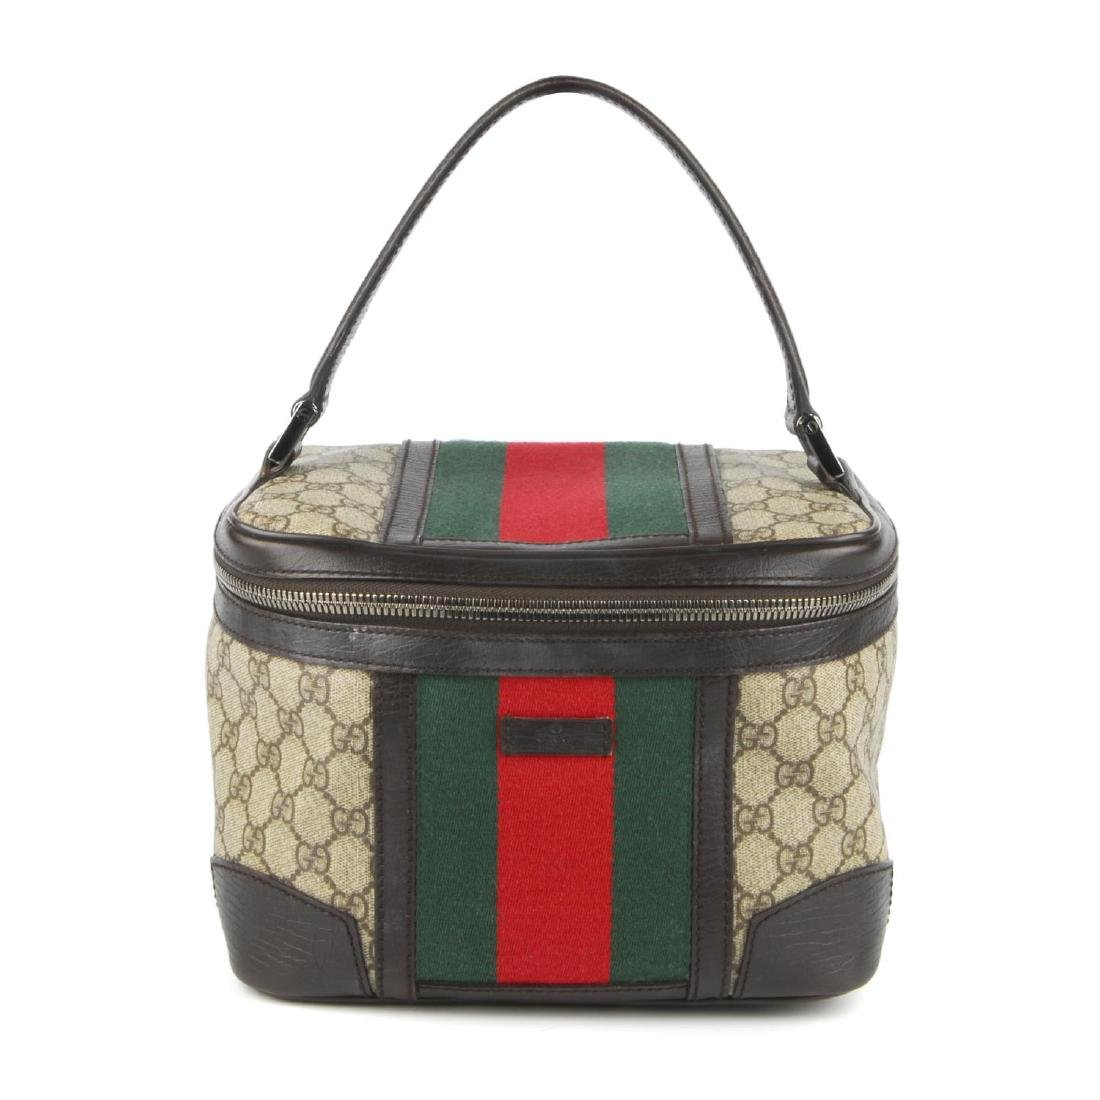 GUCCI - a Supreme Web cosmetics travel bag. Crafted